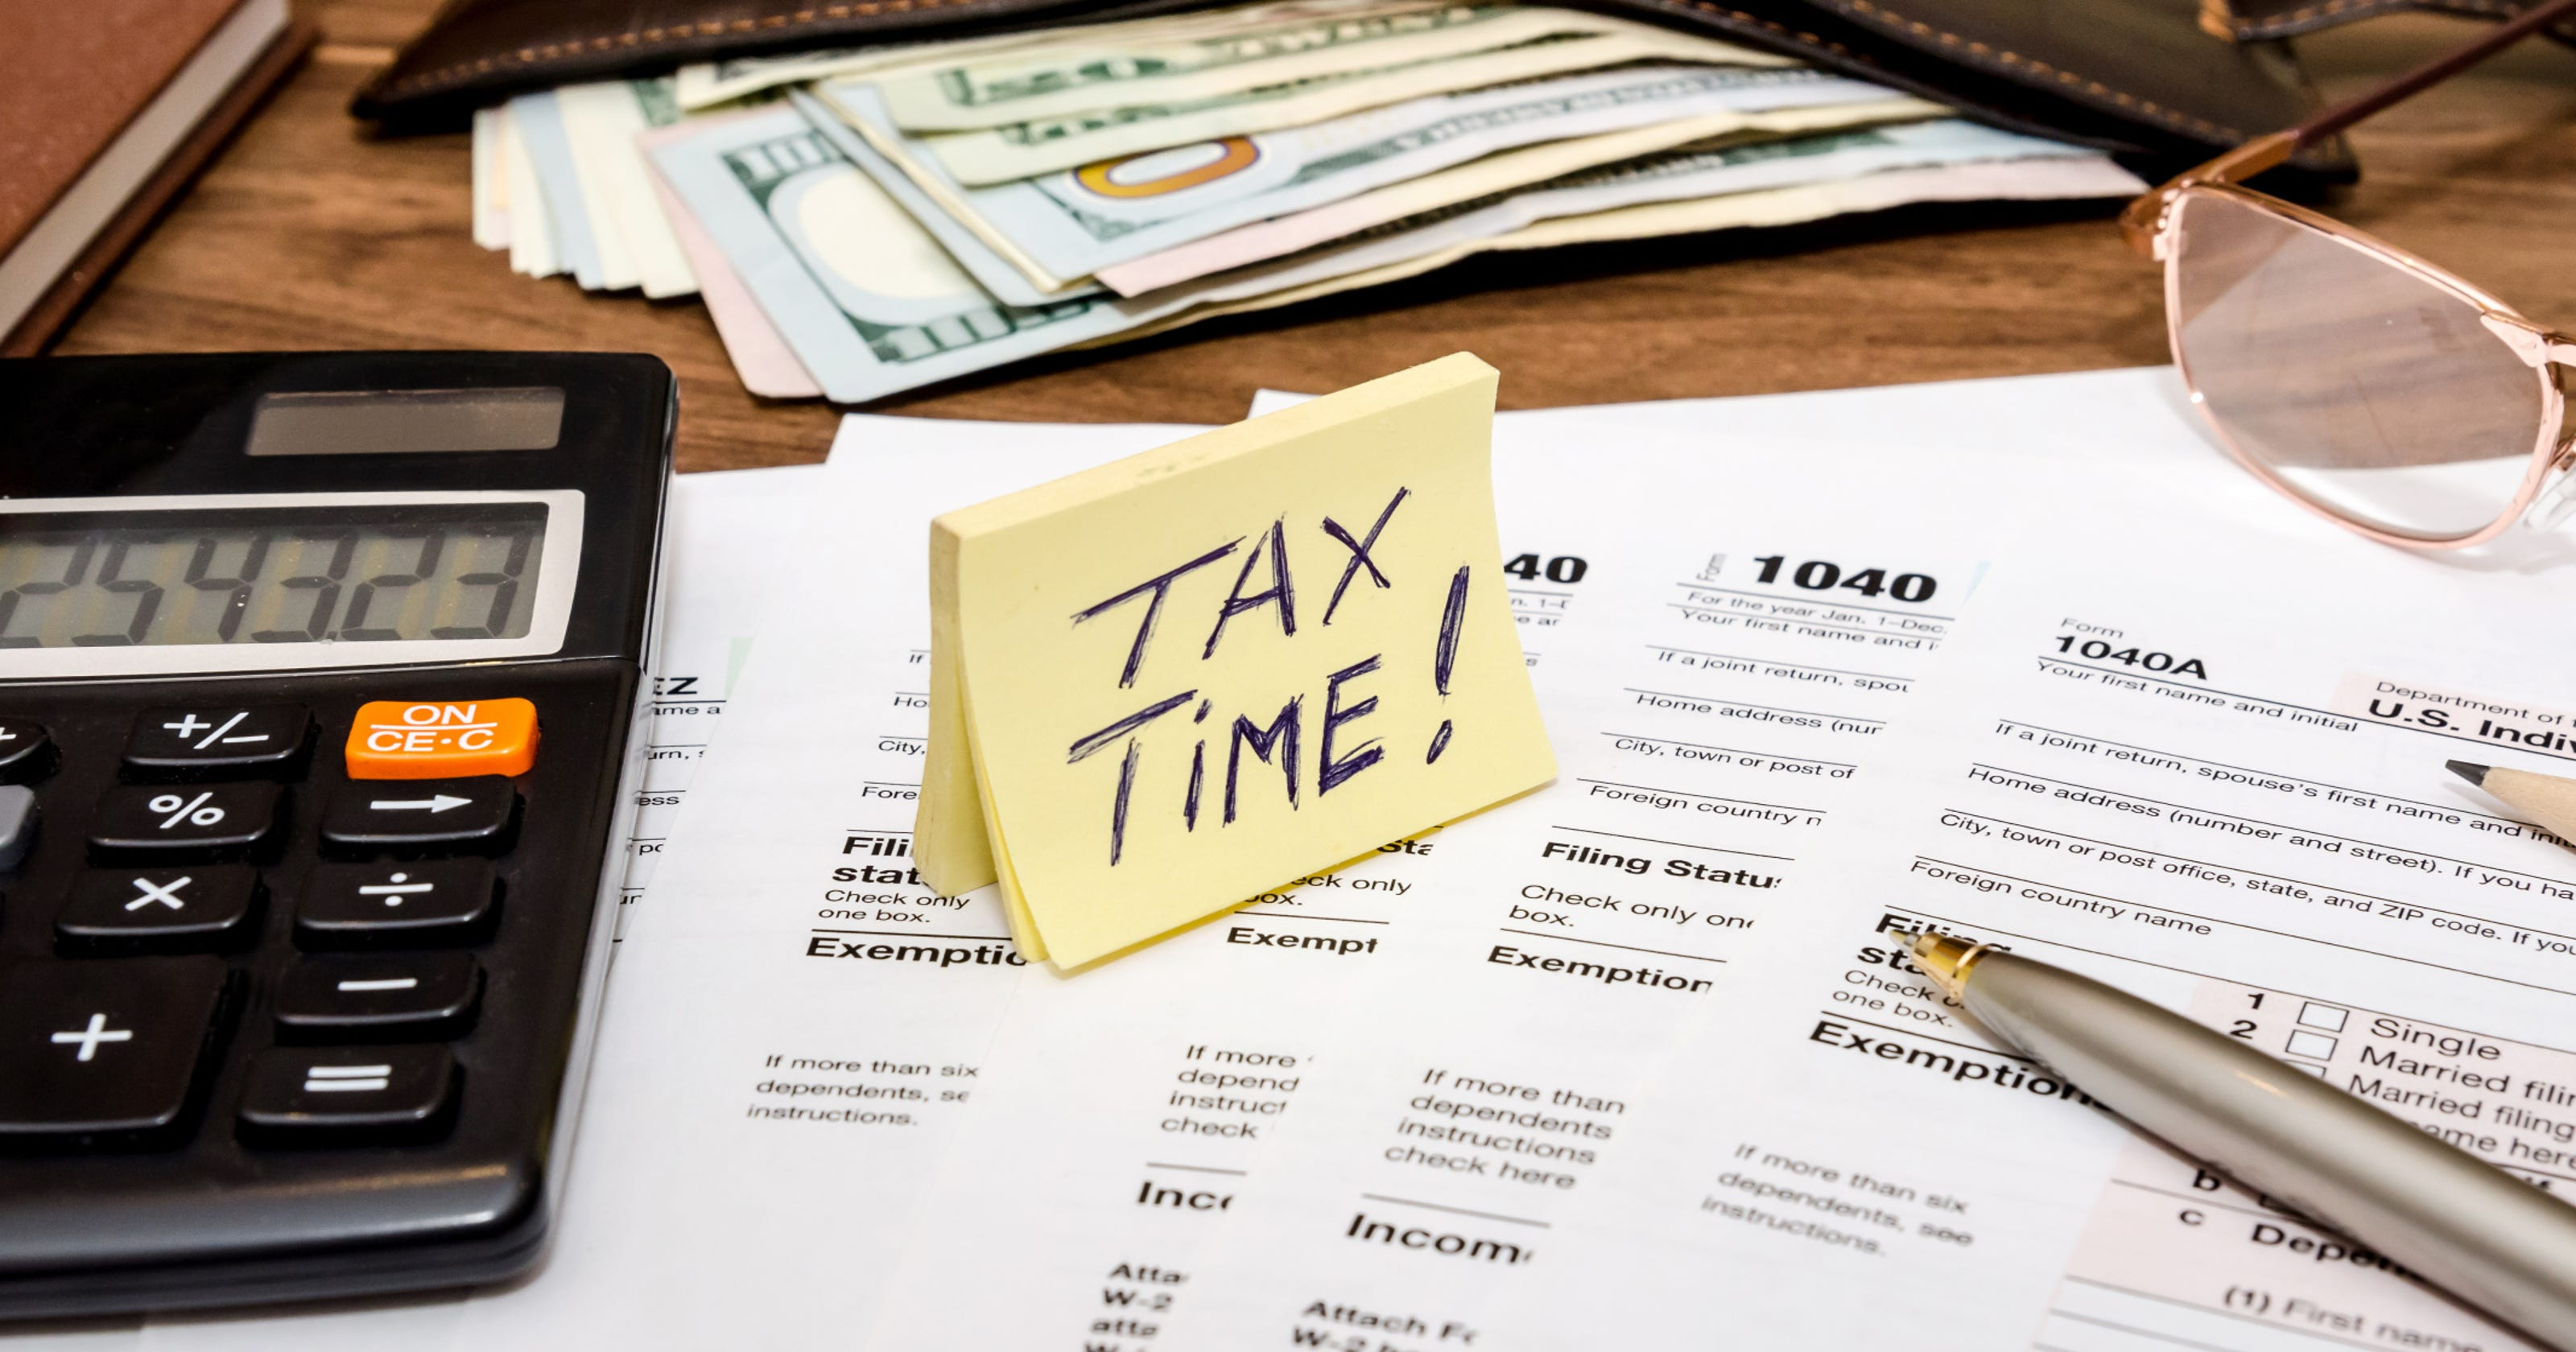 Tax season: 10 tips for doing your taxes yourself